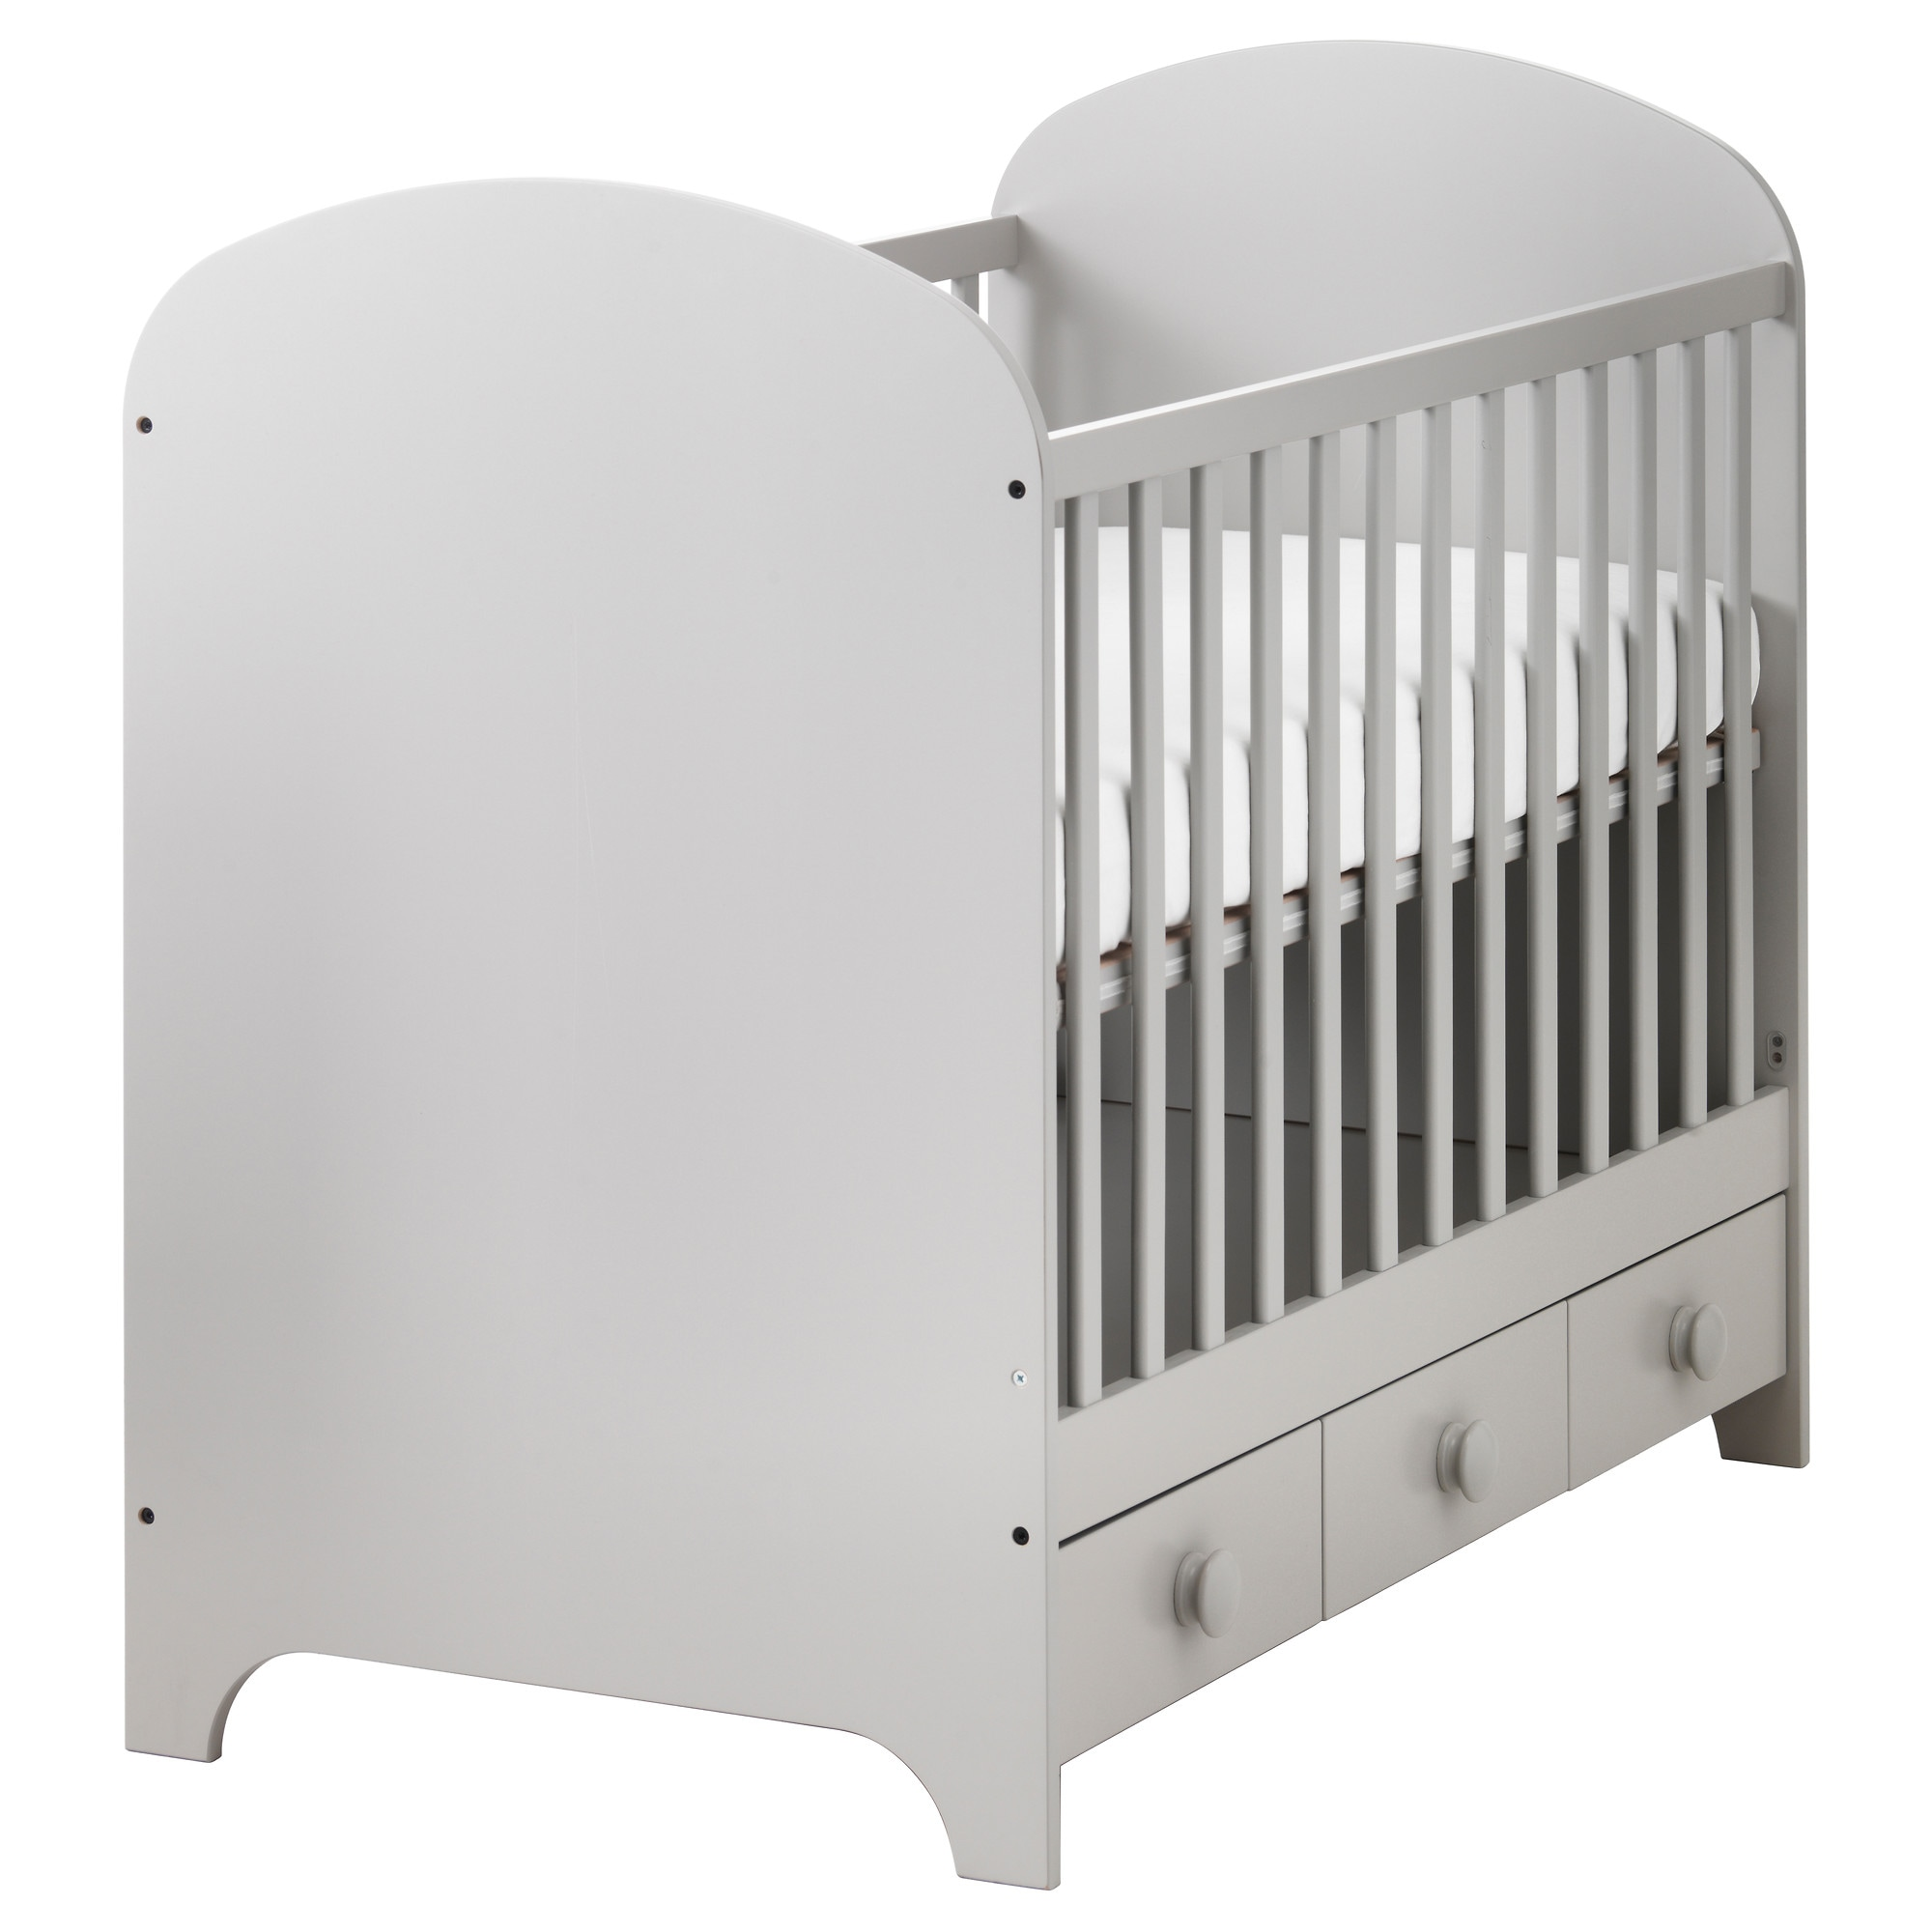 Baby bed extension uk - Gonatt Crib Light Gray Length 53 1 2 Width 29 1